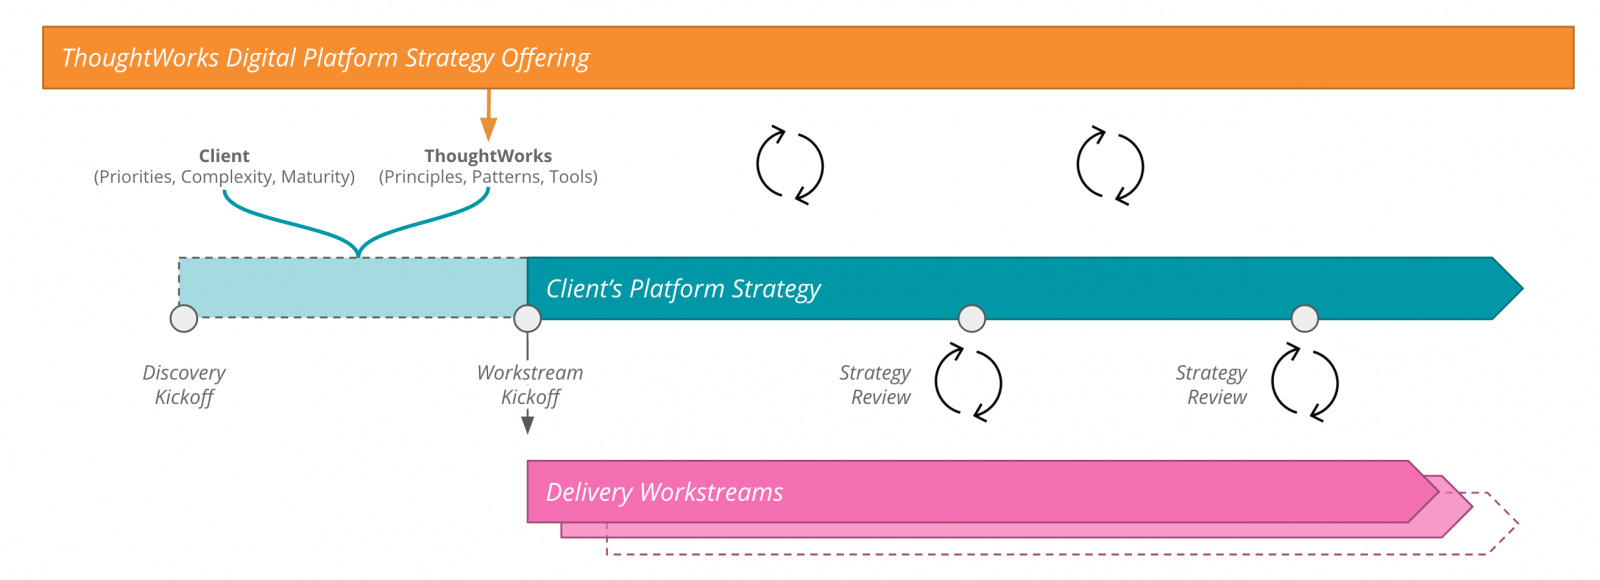 Digital Platform Strategy - the approach